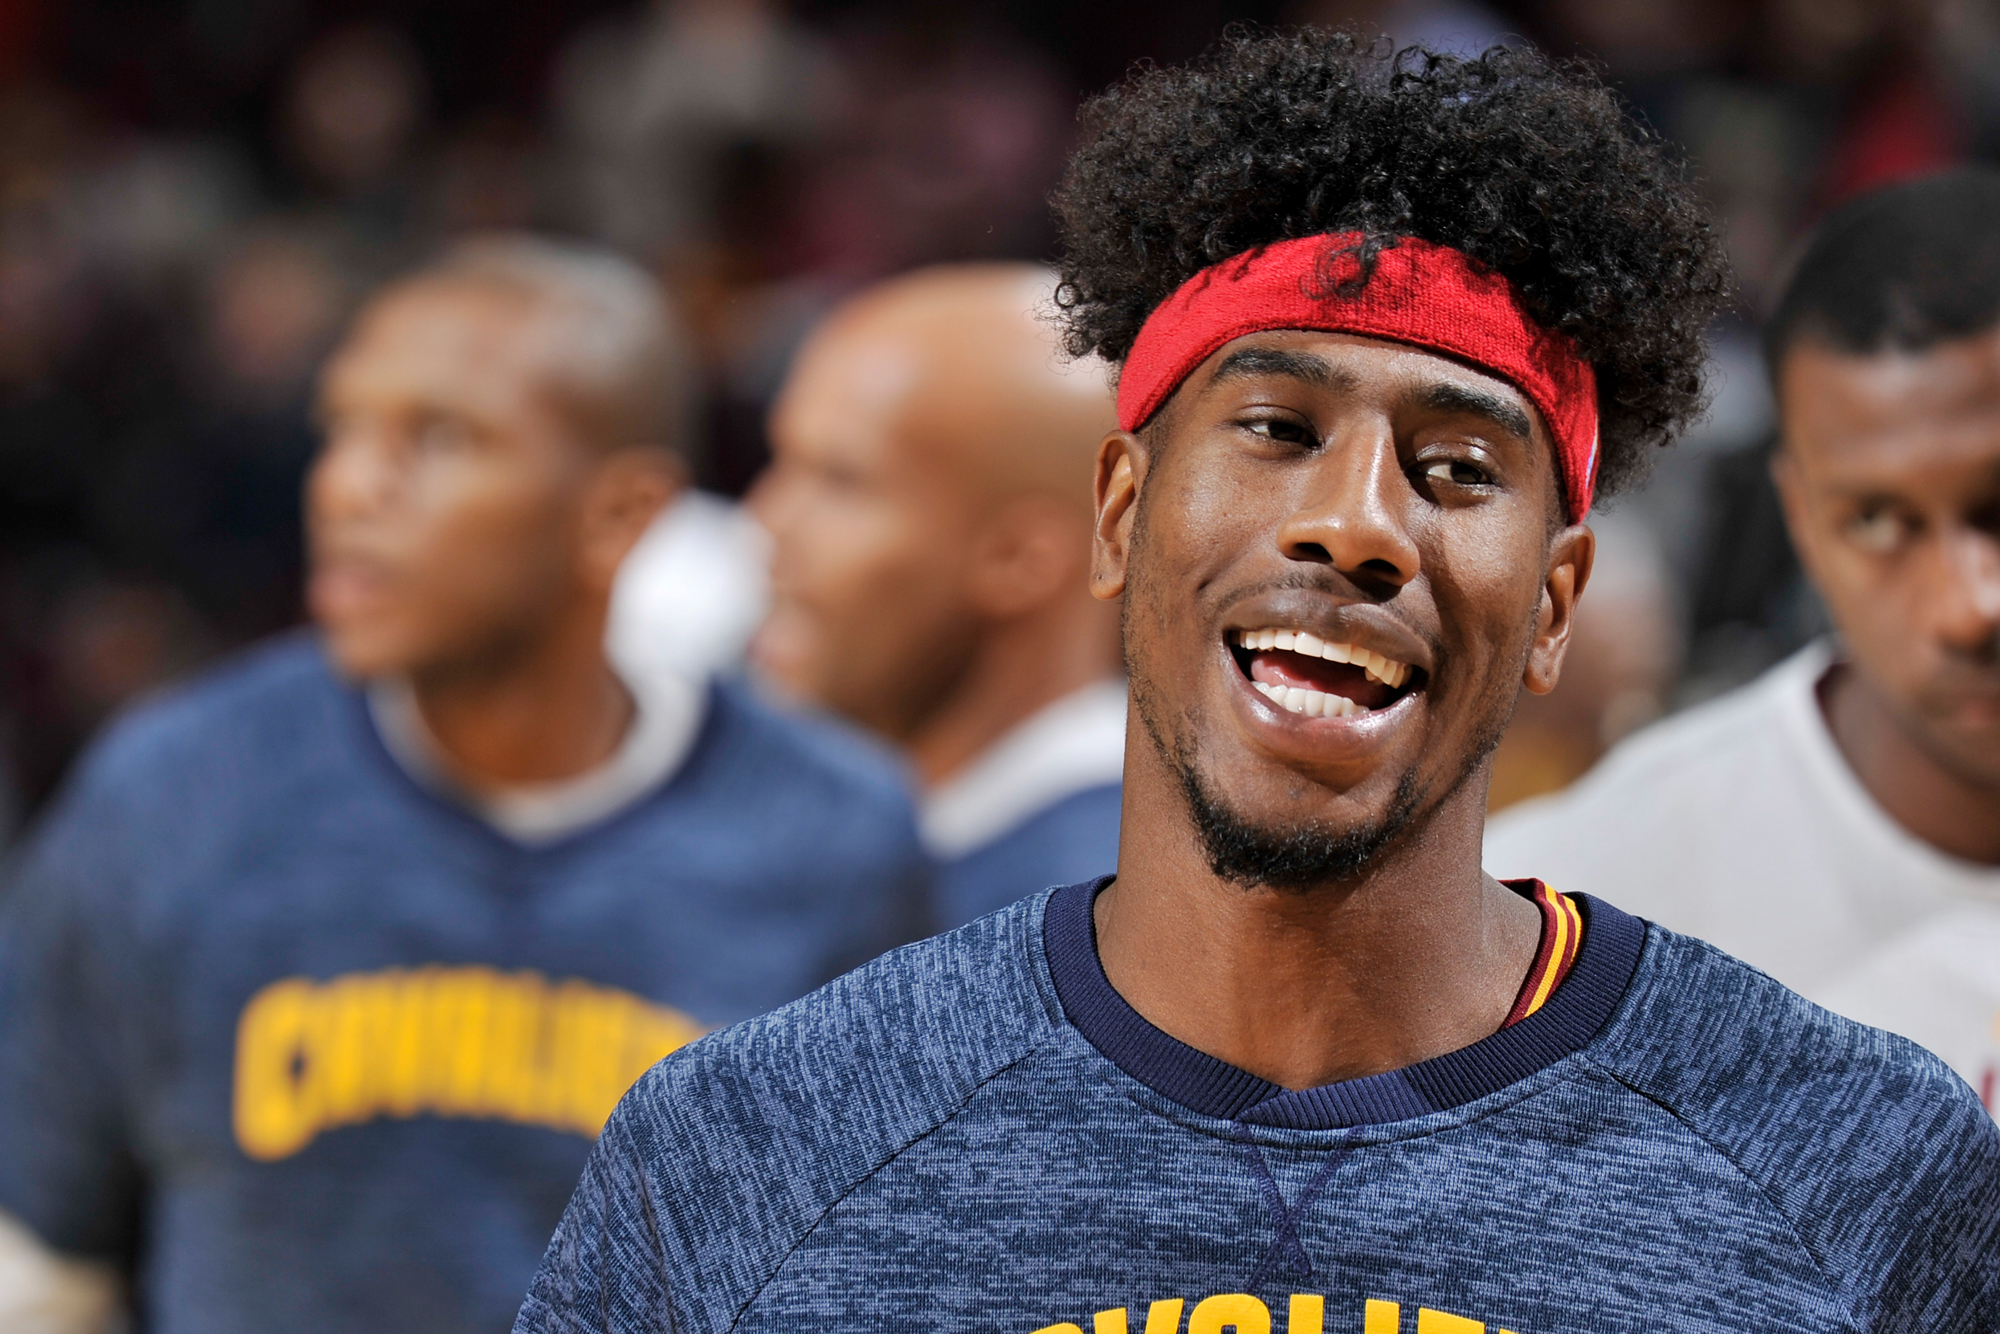 Iman Shumpert #4 of the Cleveland Cavaliers warms up before a preseason game against the Toronto Raptors on October 13, 2016 at Quicken Loans Arena in Cleveland, Ohio.